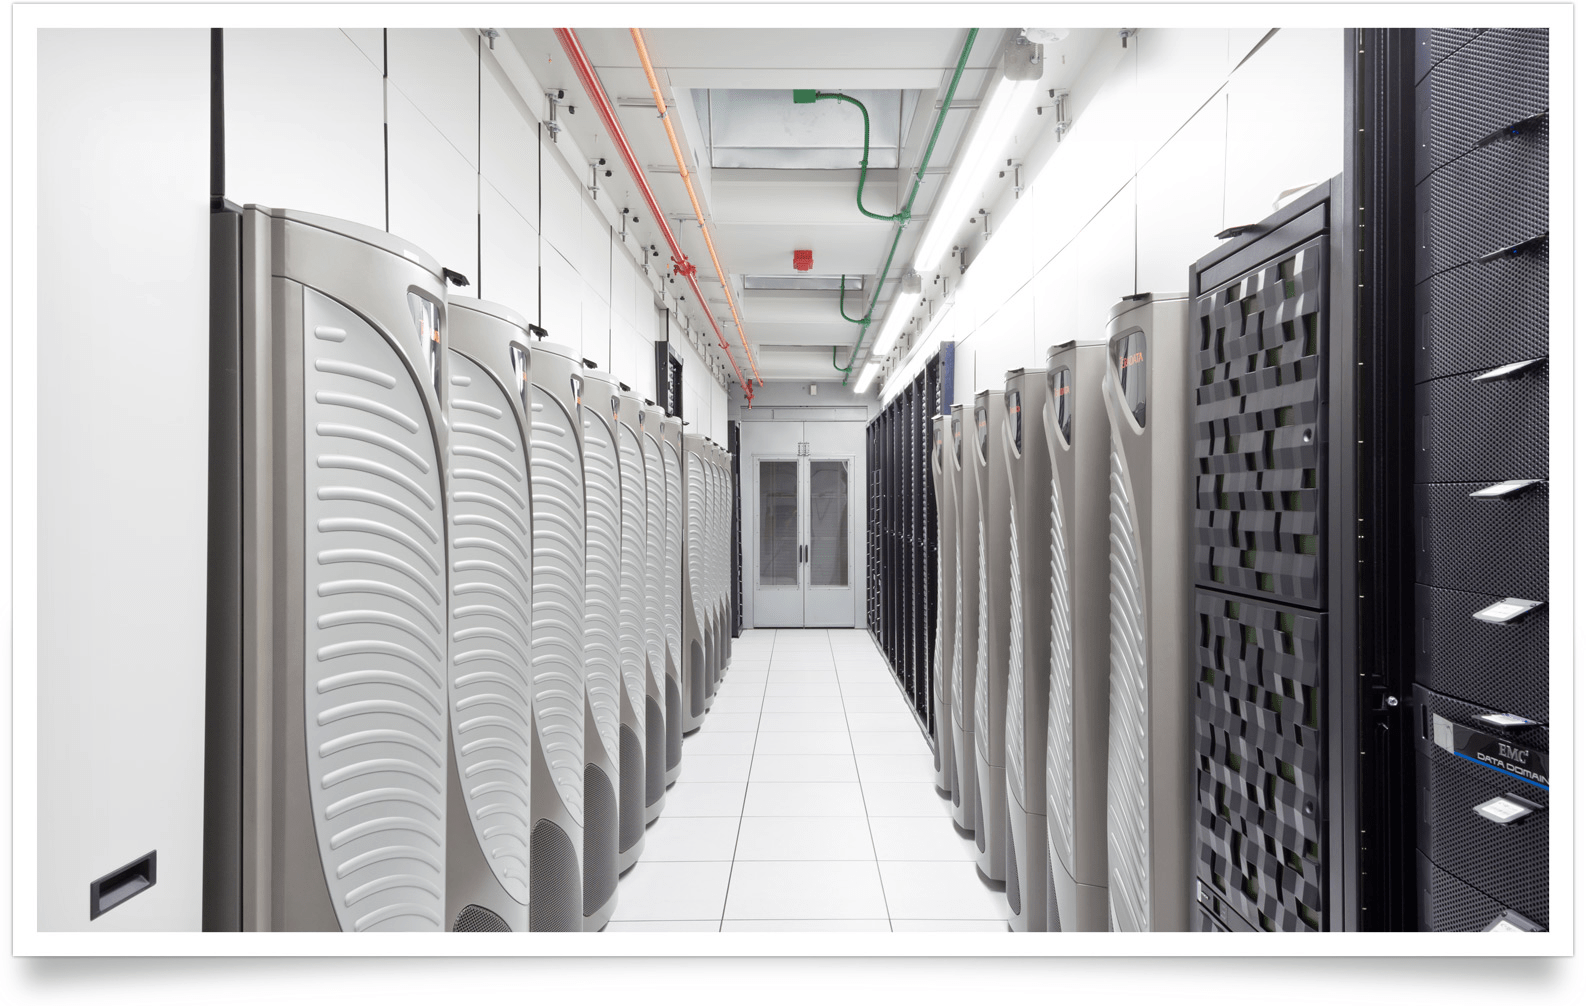 Data Center da Apple, em Maiden